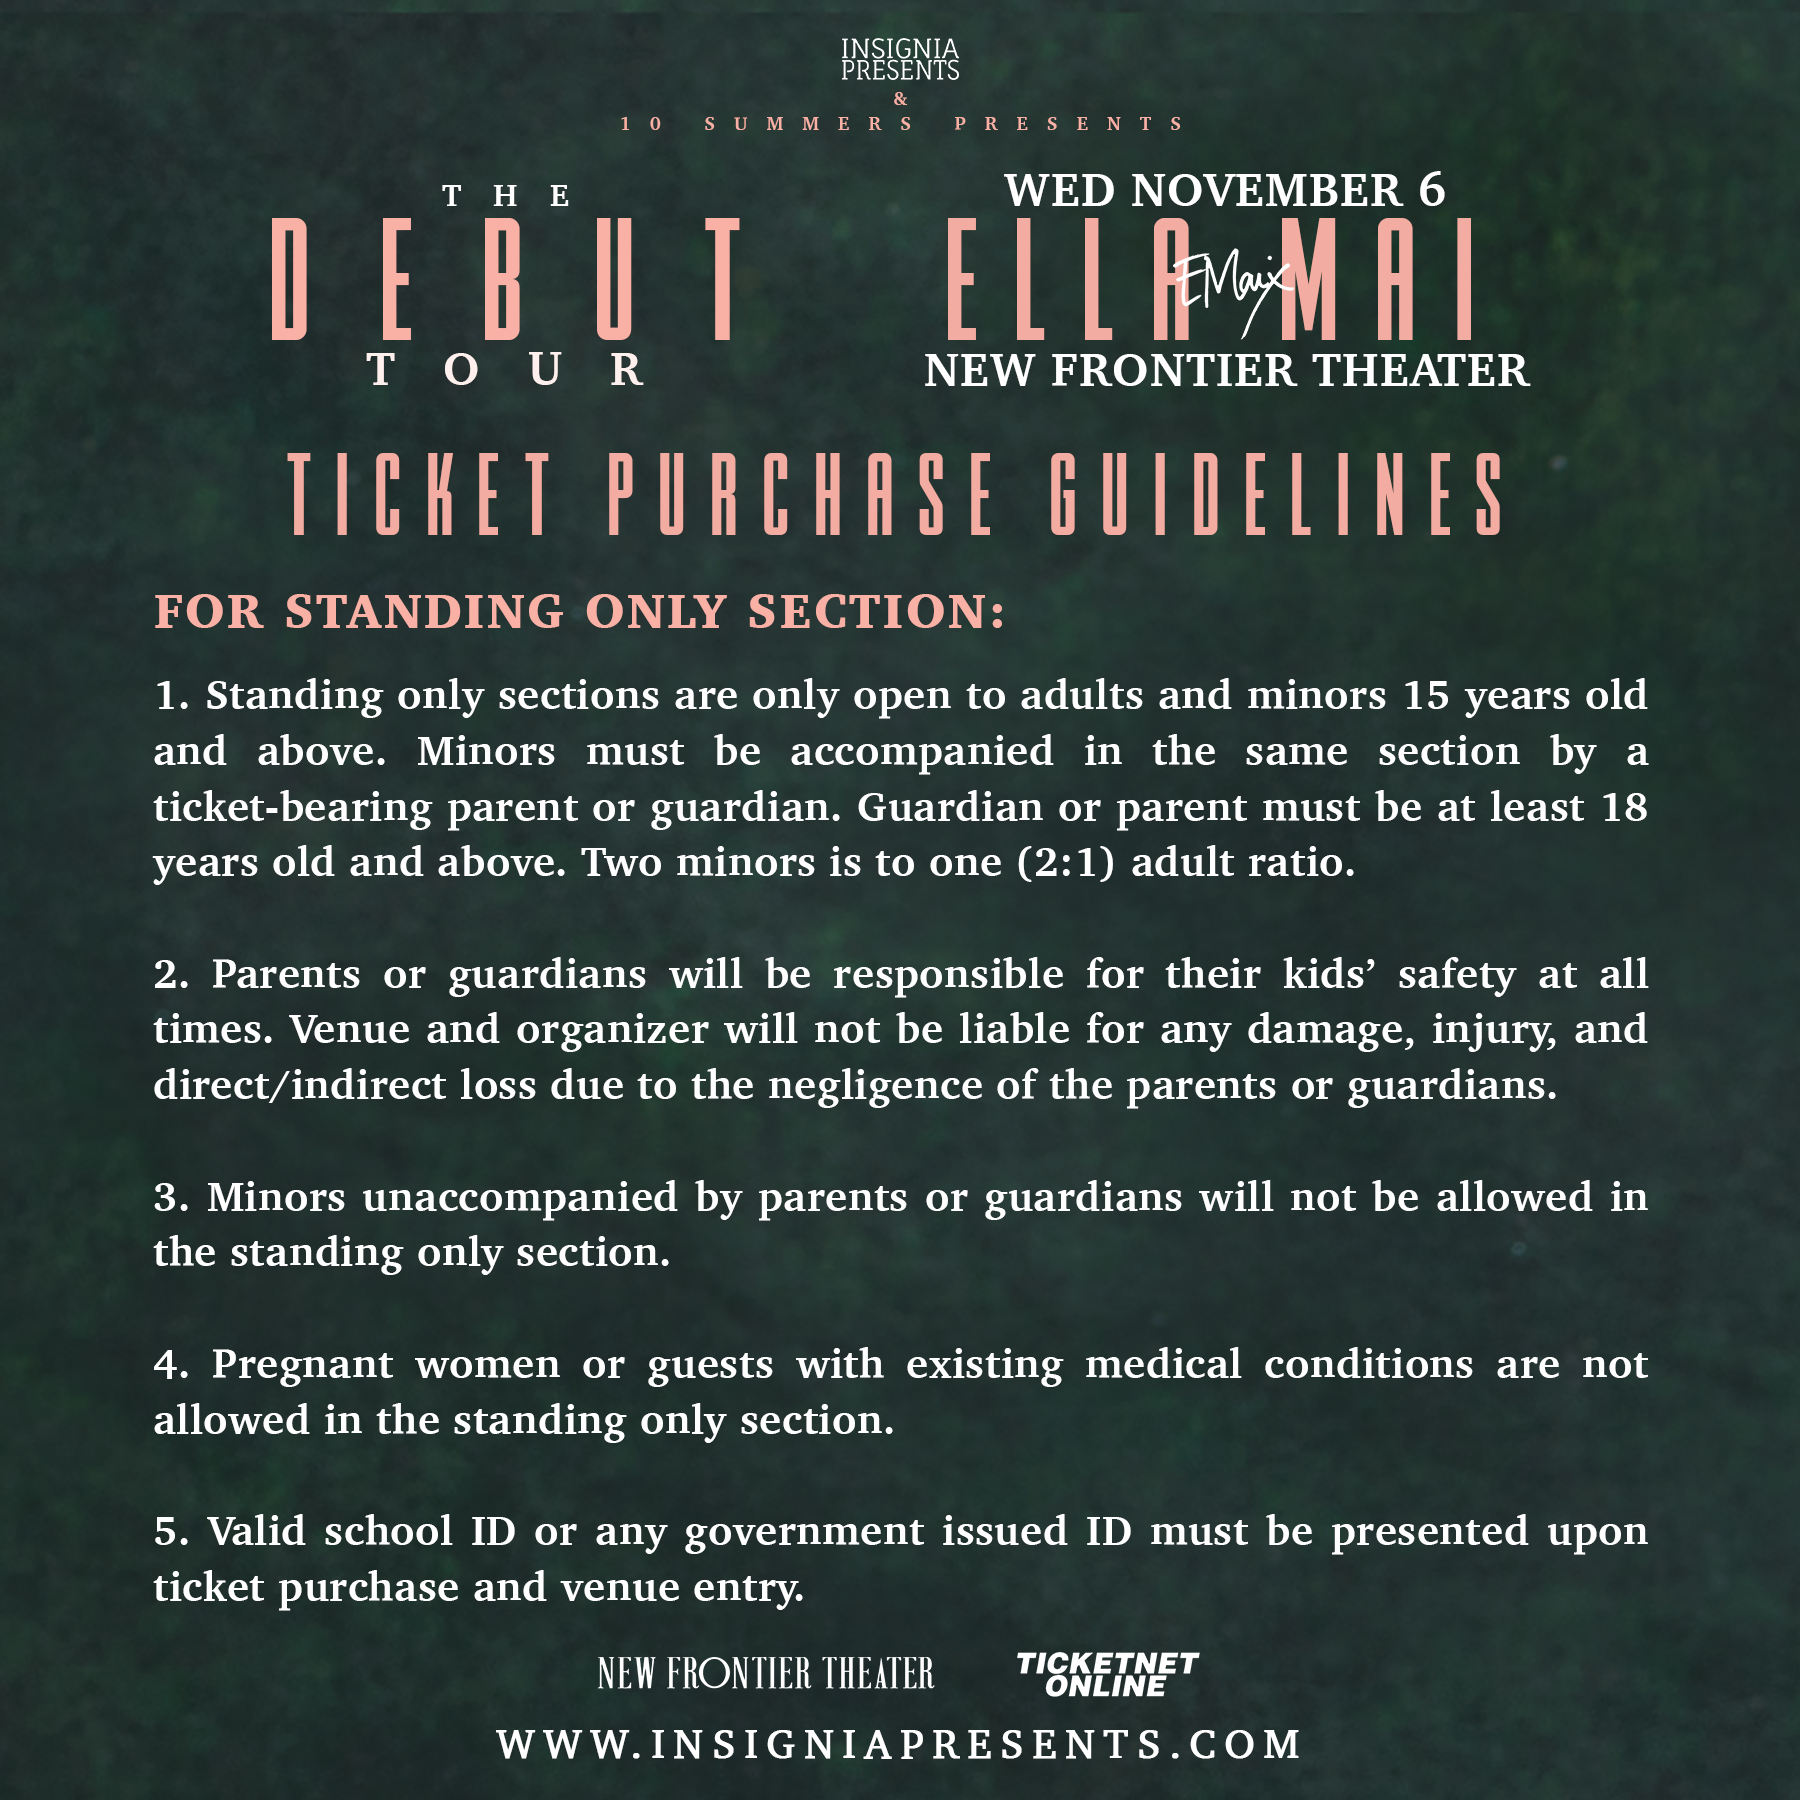 EventGuidelines_StandingSection_EllaMai-11.06.19-NewFrontierTheater-ManilaPhilippines-v2.png